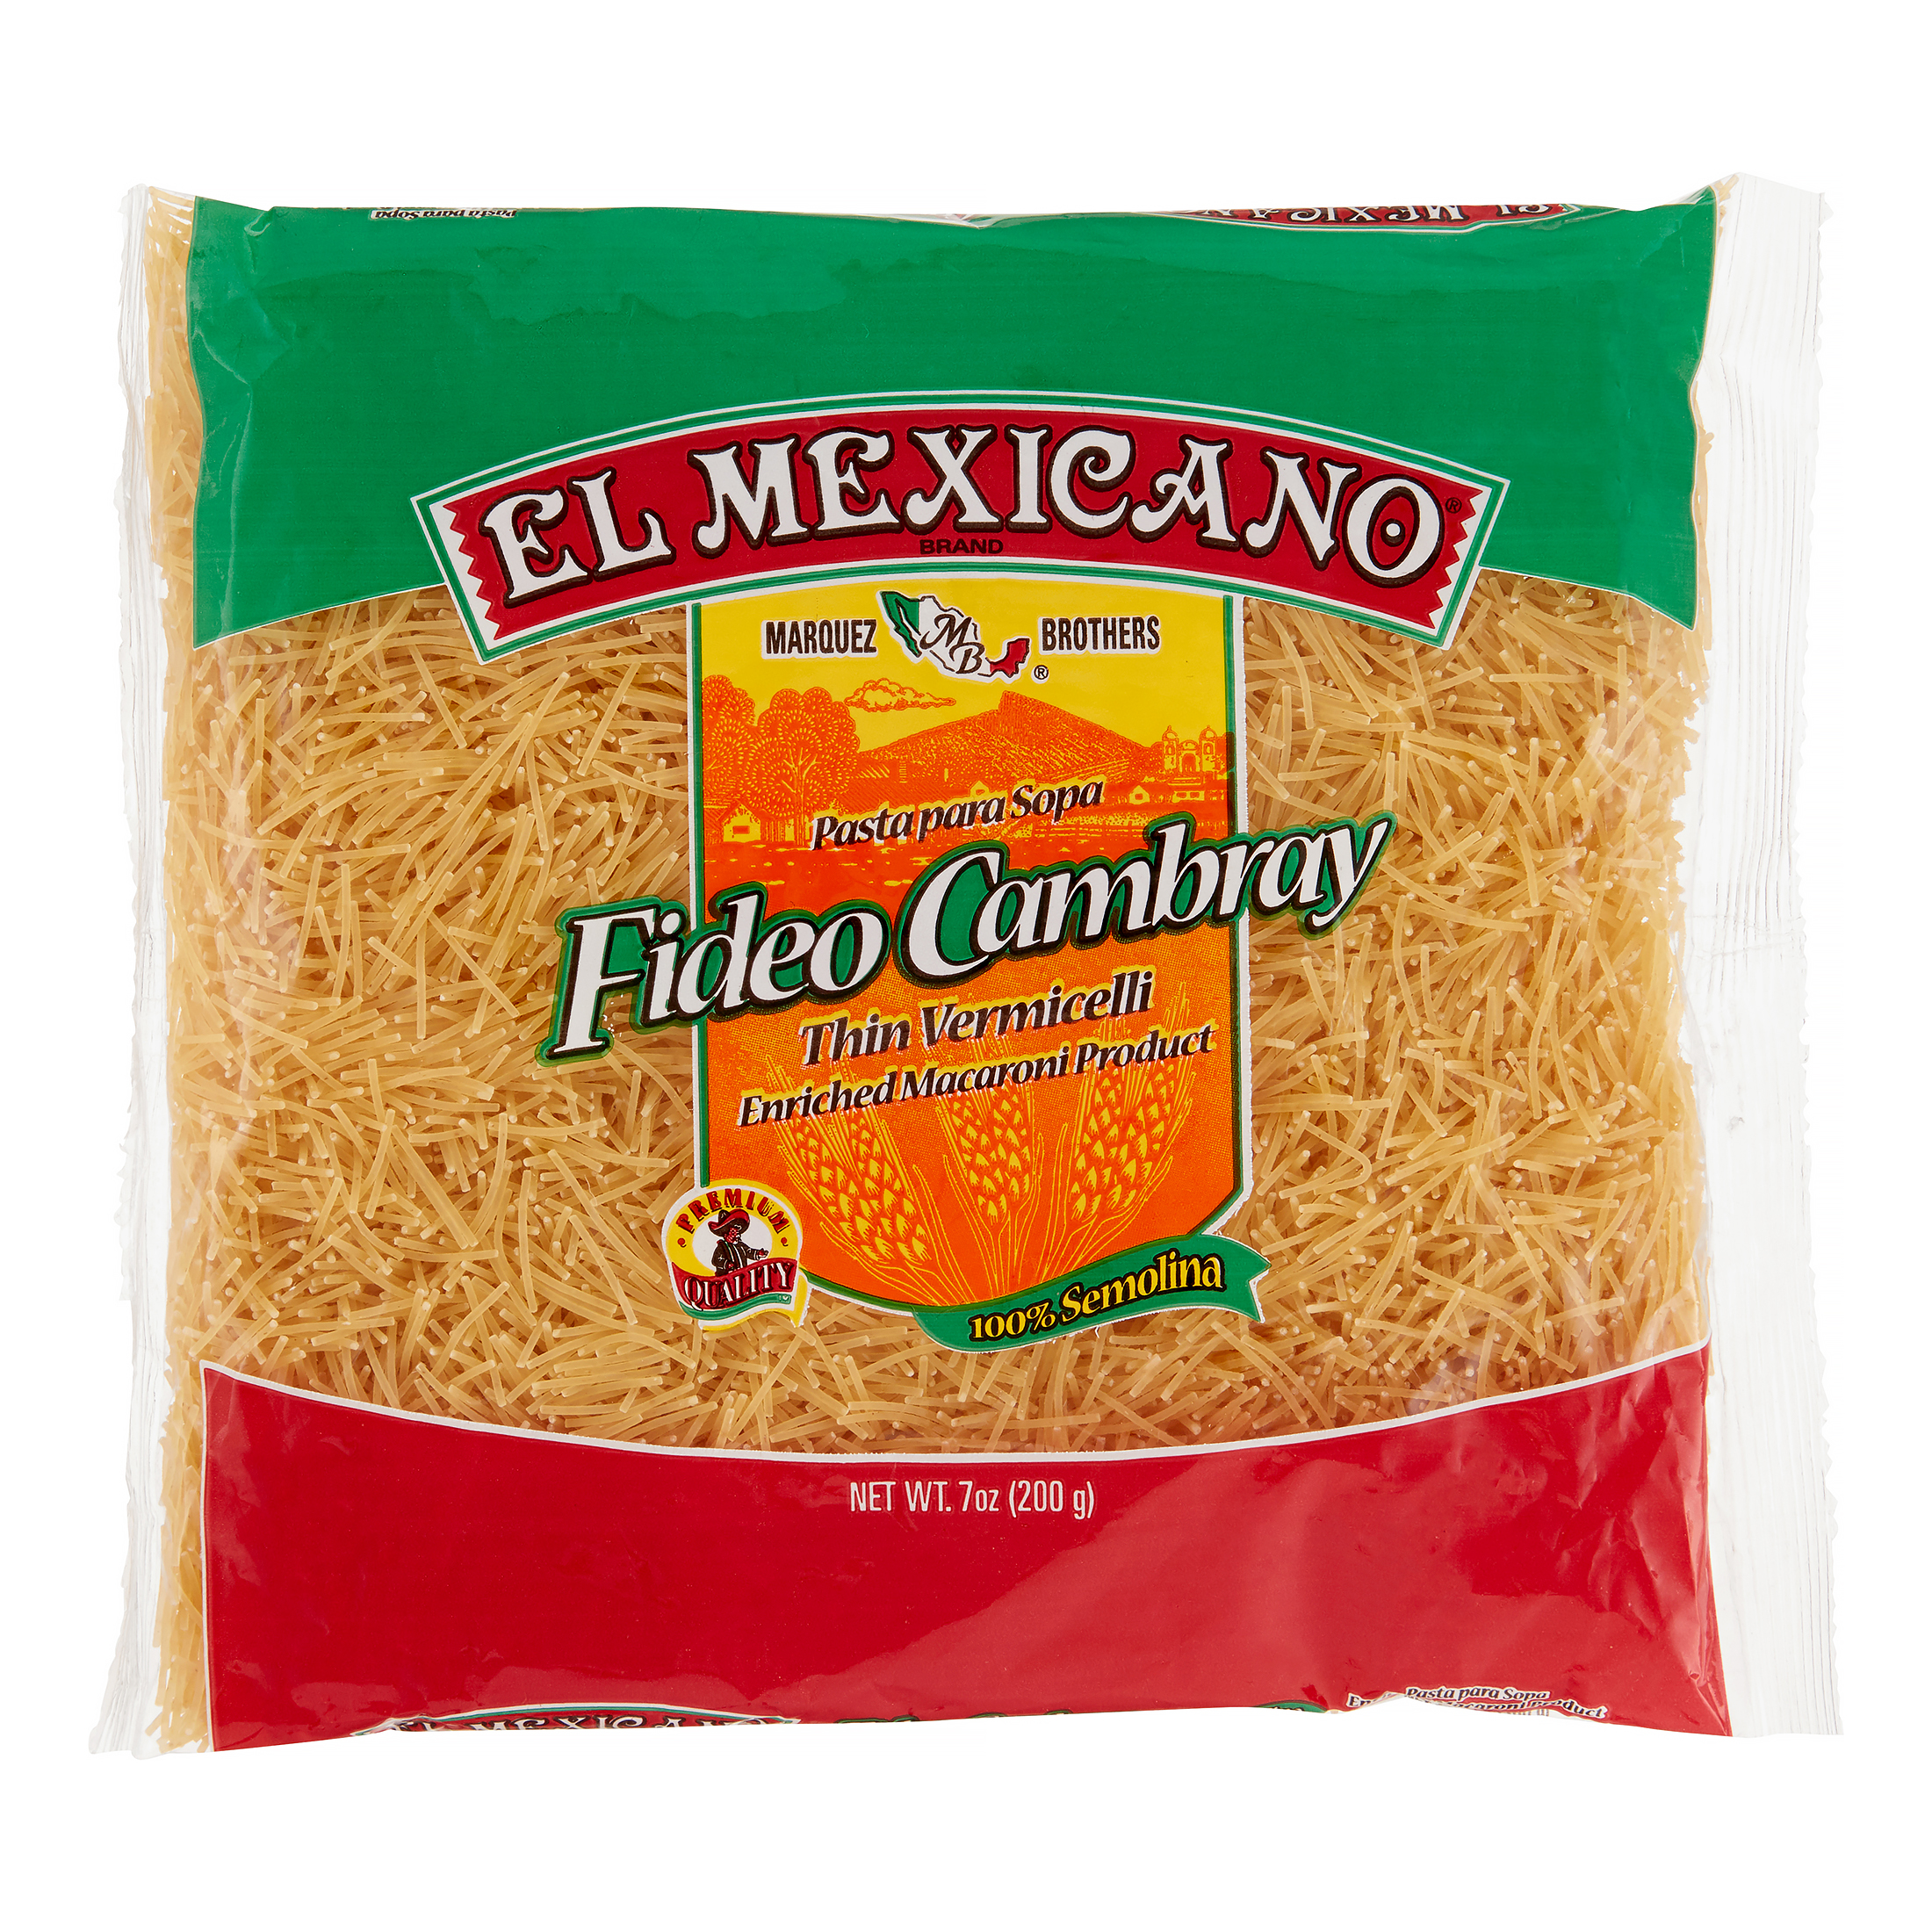 (12 Packs) El Mexicano Thin Vermicelli Pasta, 5.25lb, $0.42 /lb